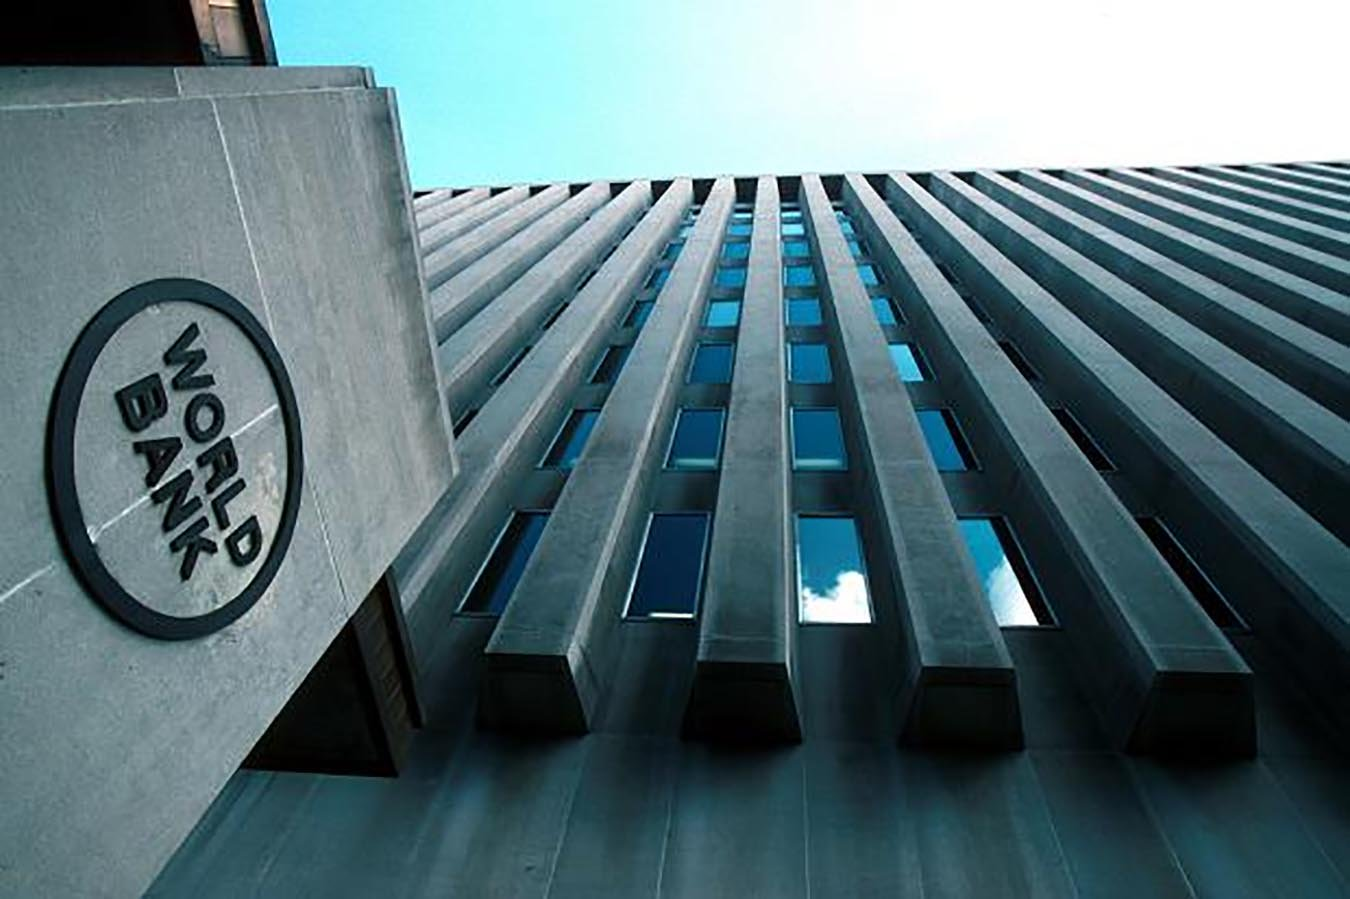 wb keen to provide 188m under ecosystem initiative